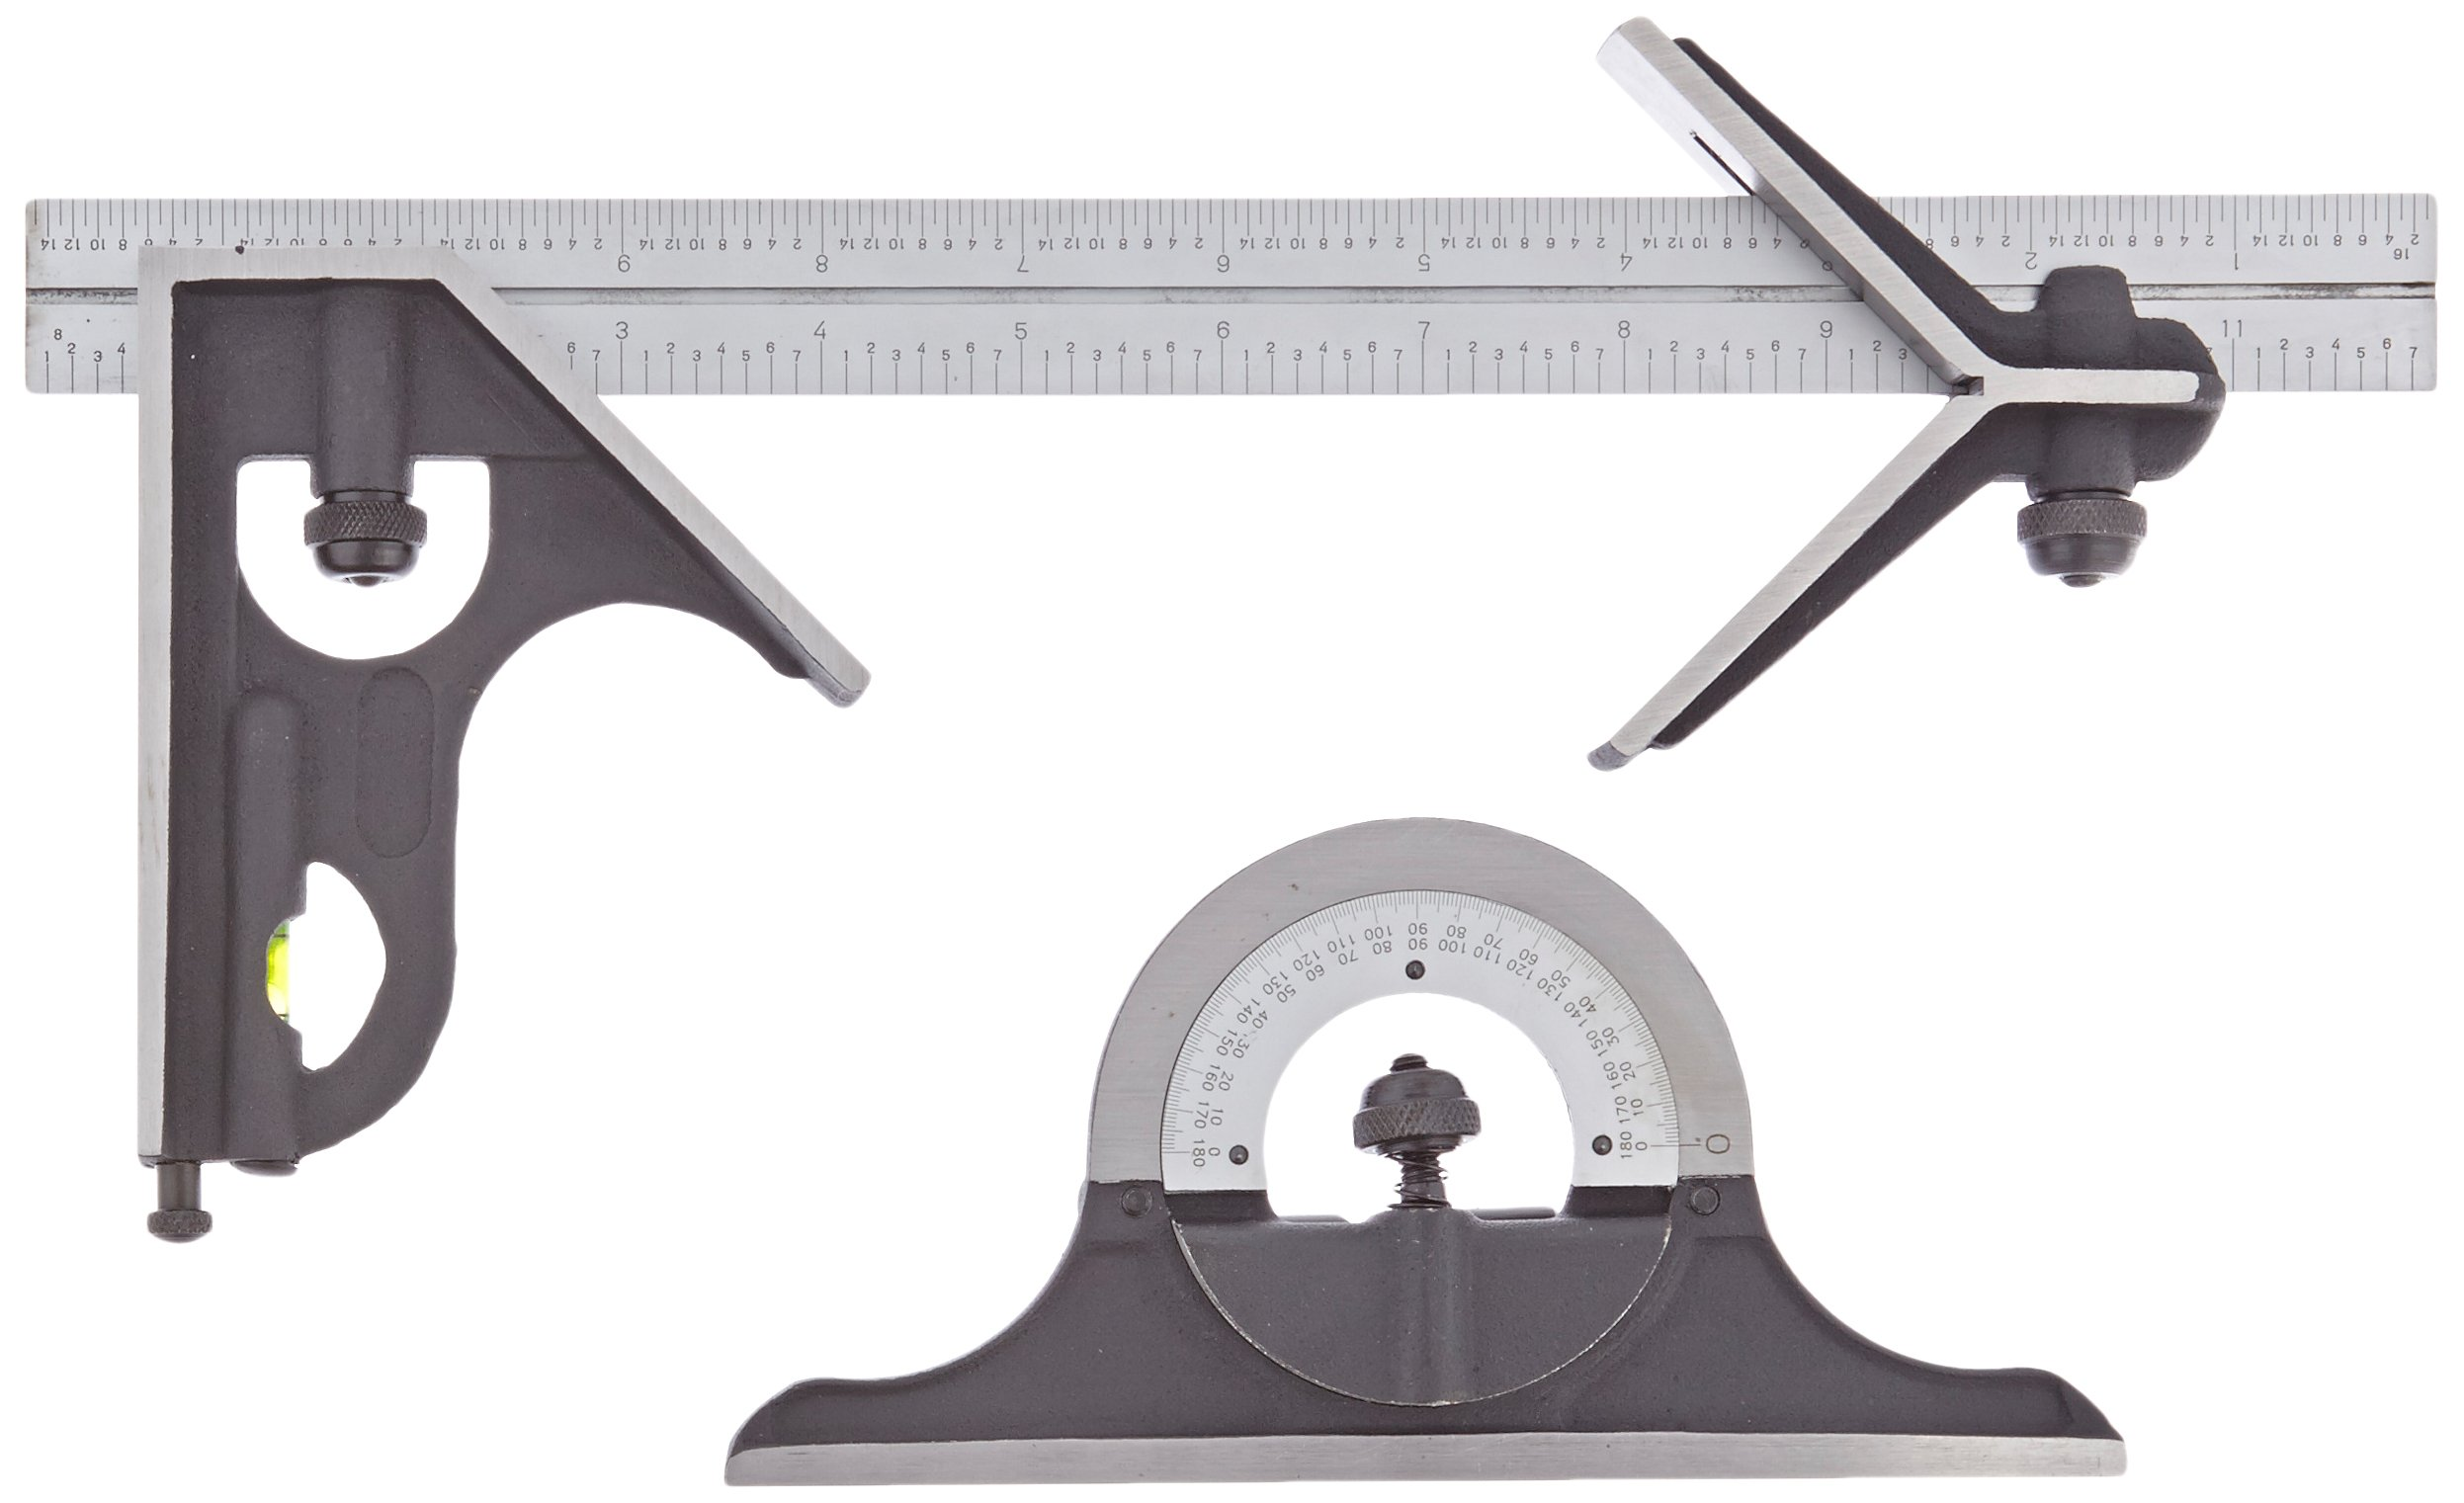 Fowler 52-370-012 Steel Combination Square Set with Baked Blue Enamel Finish, 4R Graduation Interval, 4 Blade, 12'' Length by Fowler